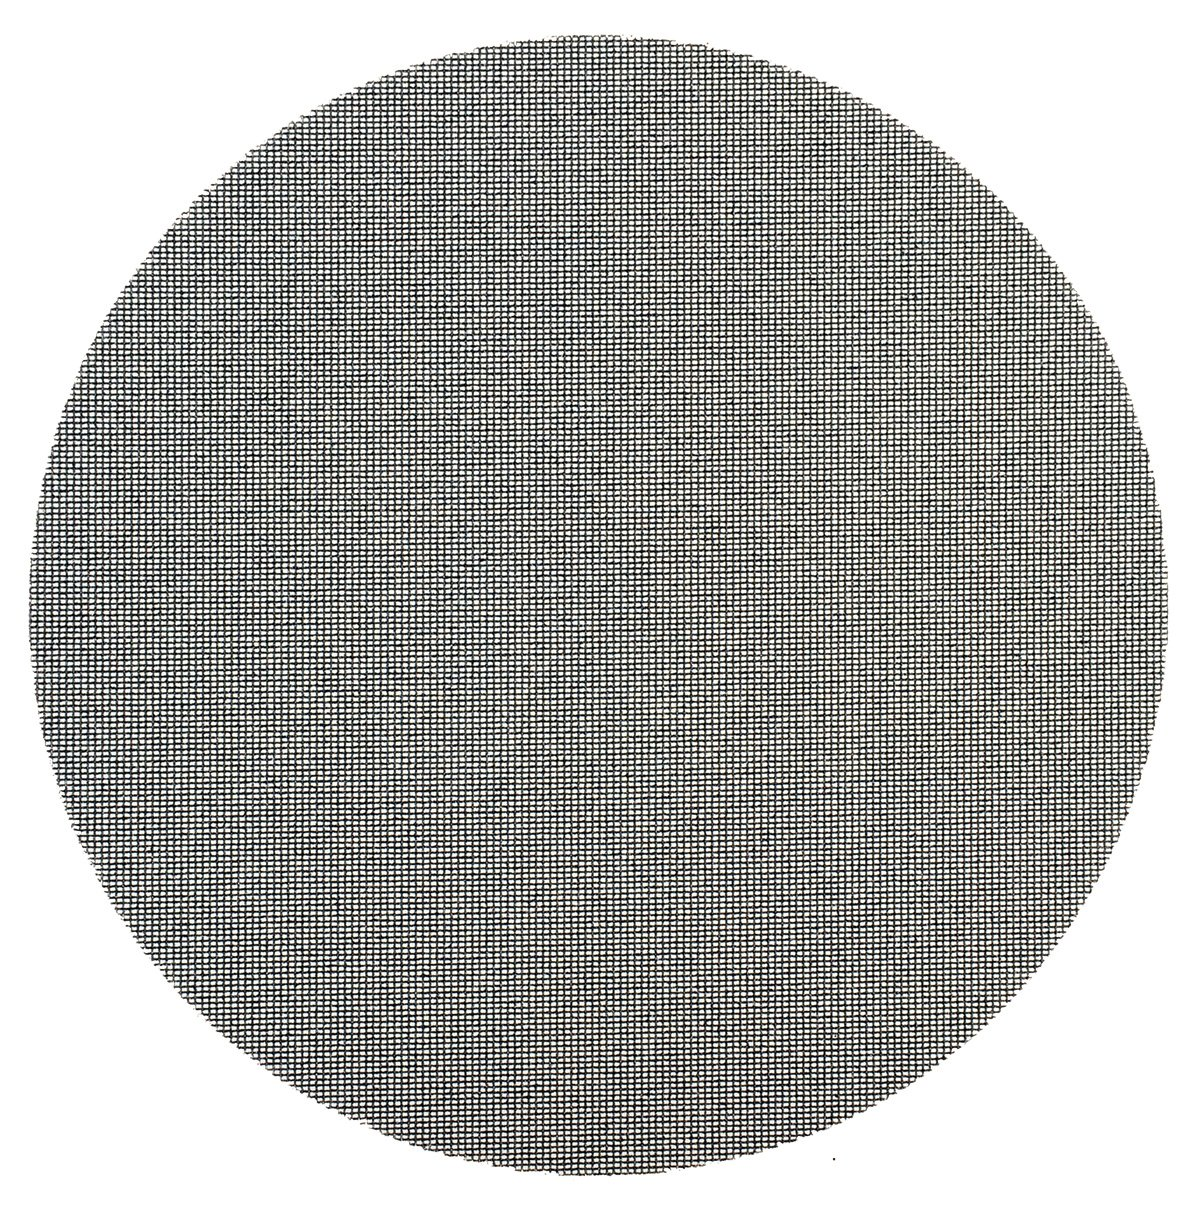 Glit/Microtron 506017 60 Grit Sand Screen Disc, 17'', Gray (Pack of 10) by Glit / Microtron